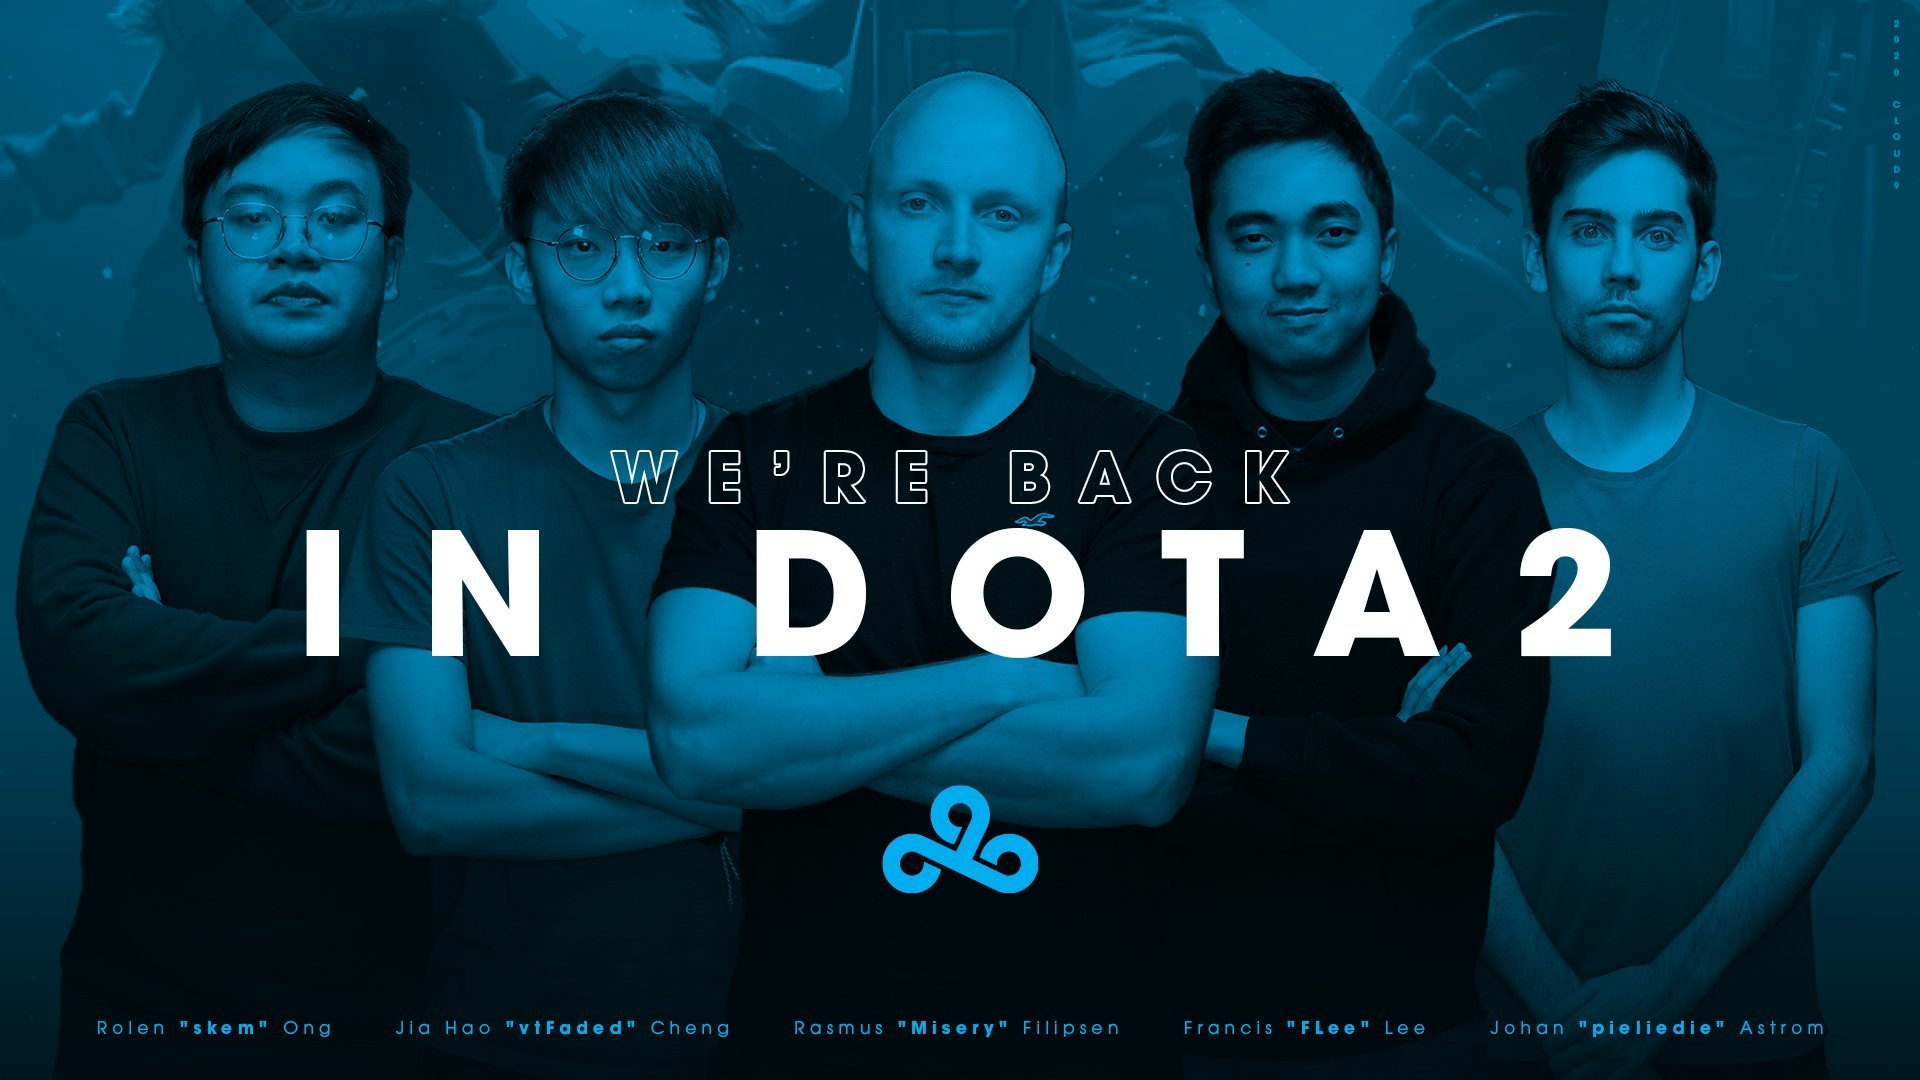 Cloud 9 return